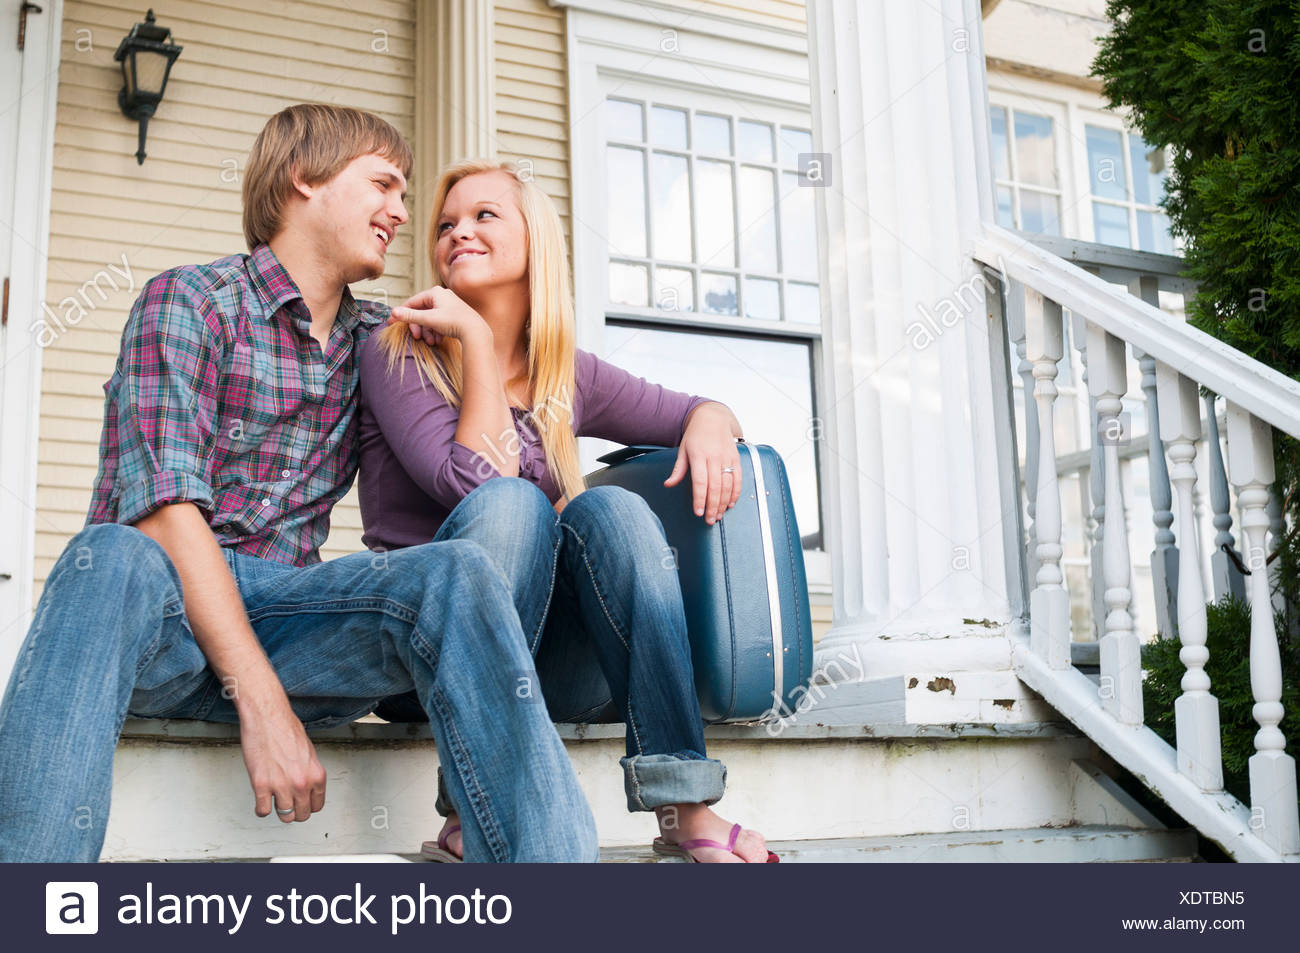 Young couple sitting on step - Stock Image